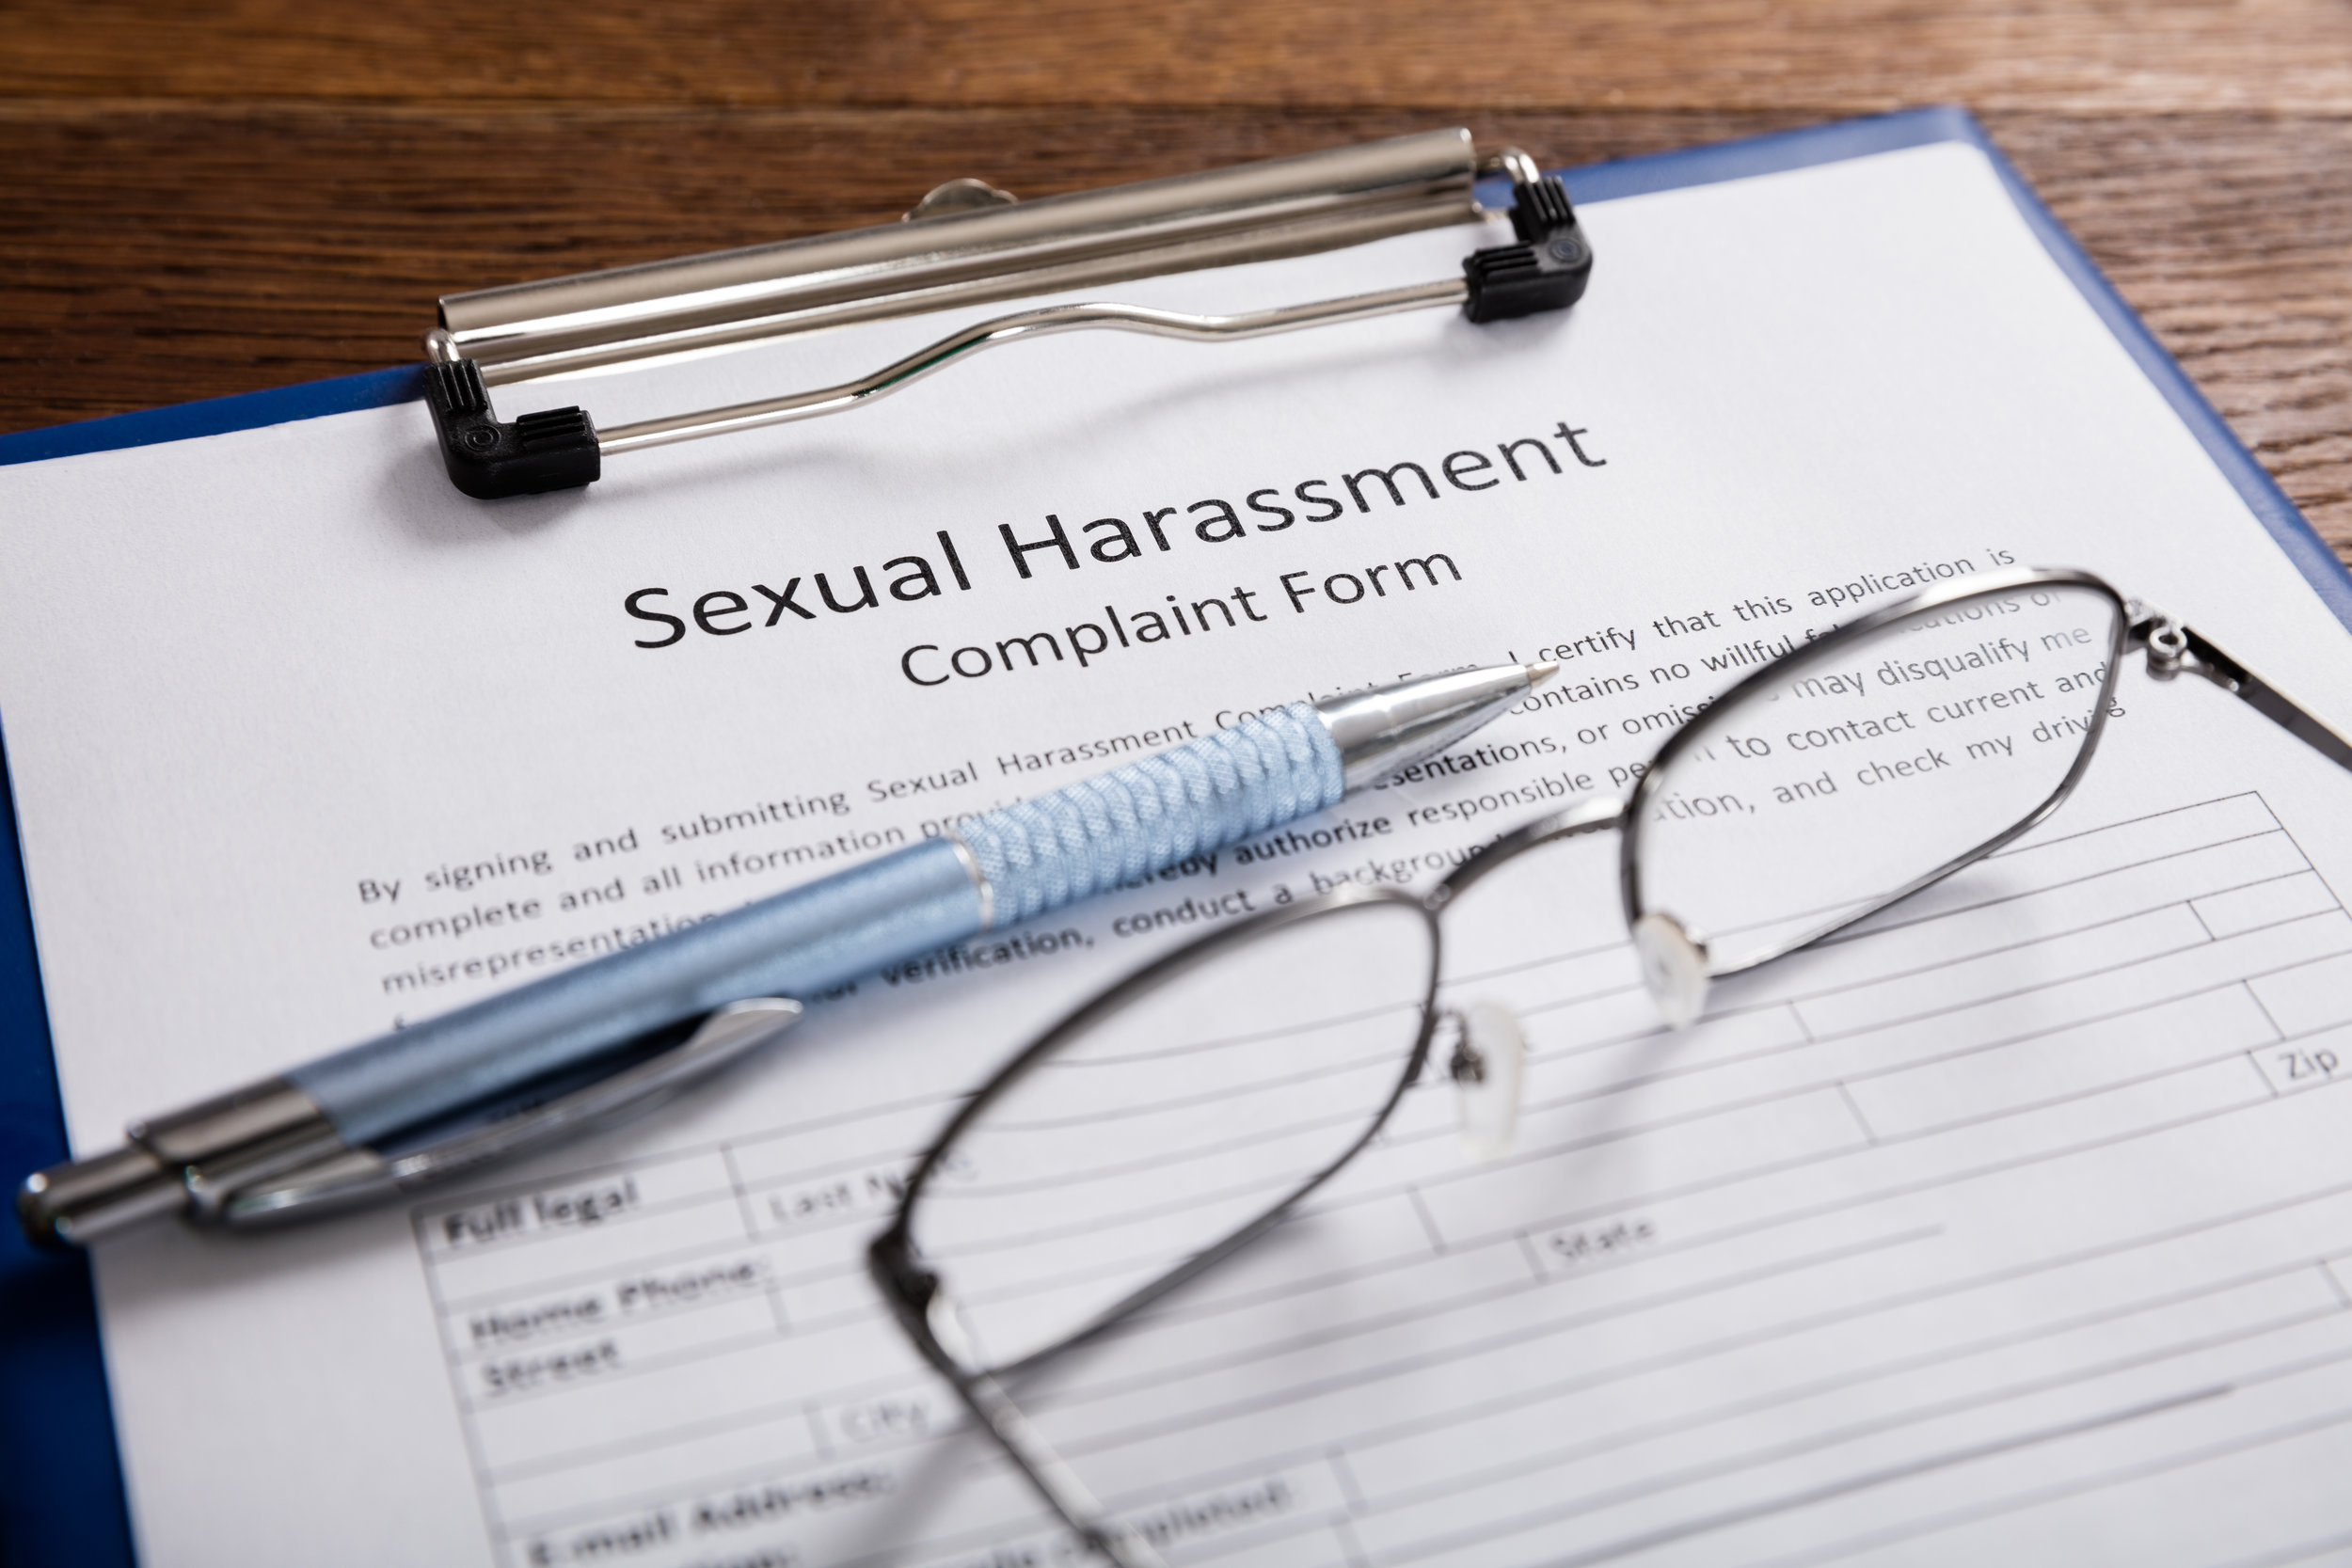 Sexual Harassment Complaint Form on a clipboard with a pen and glasses.